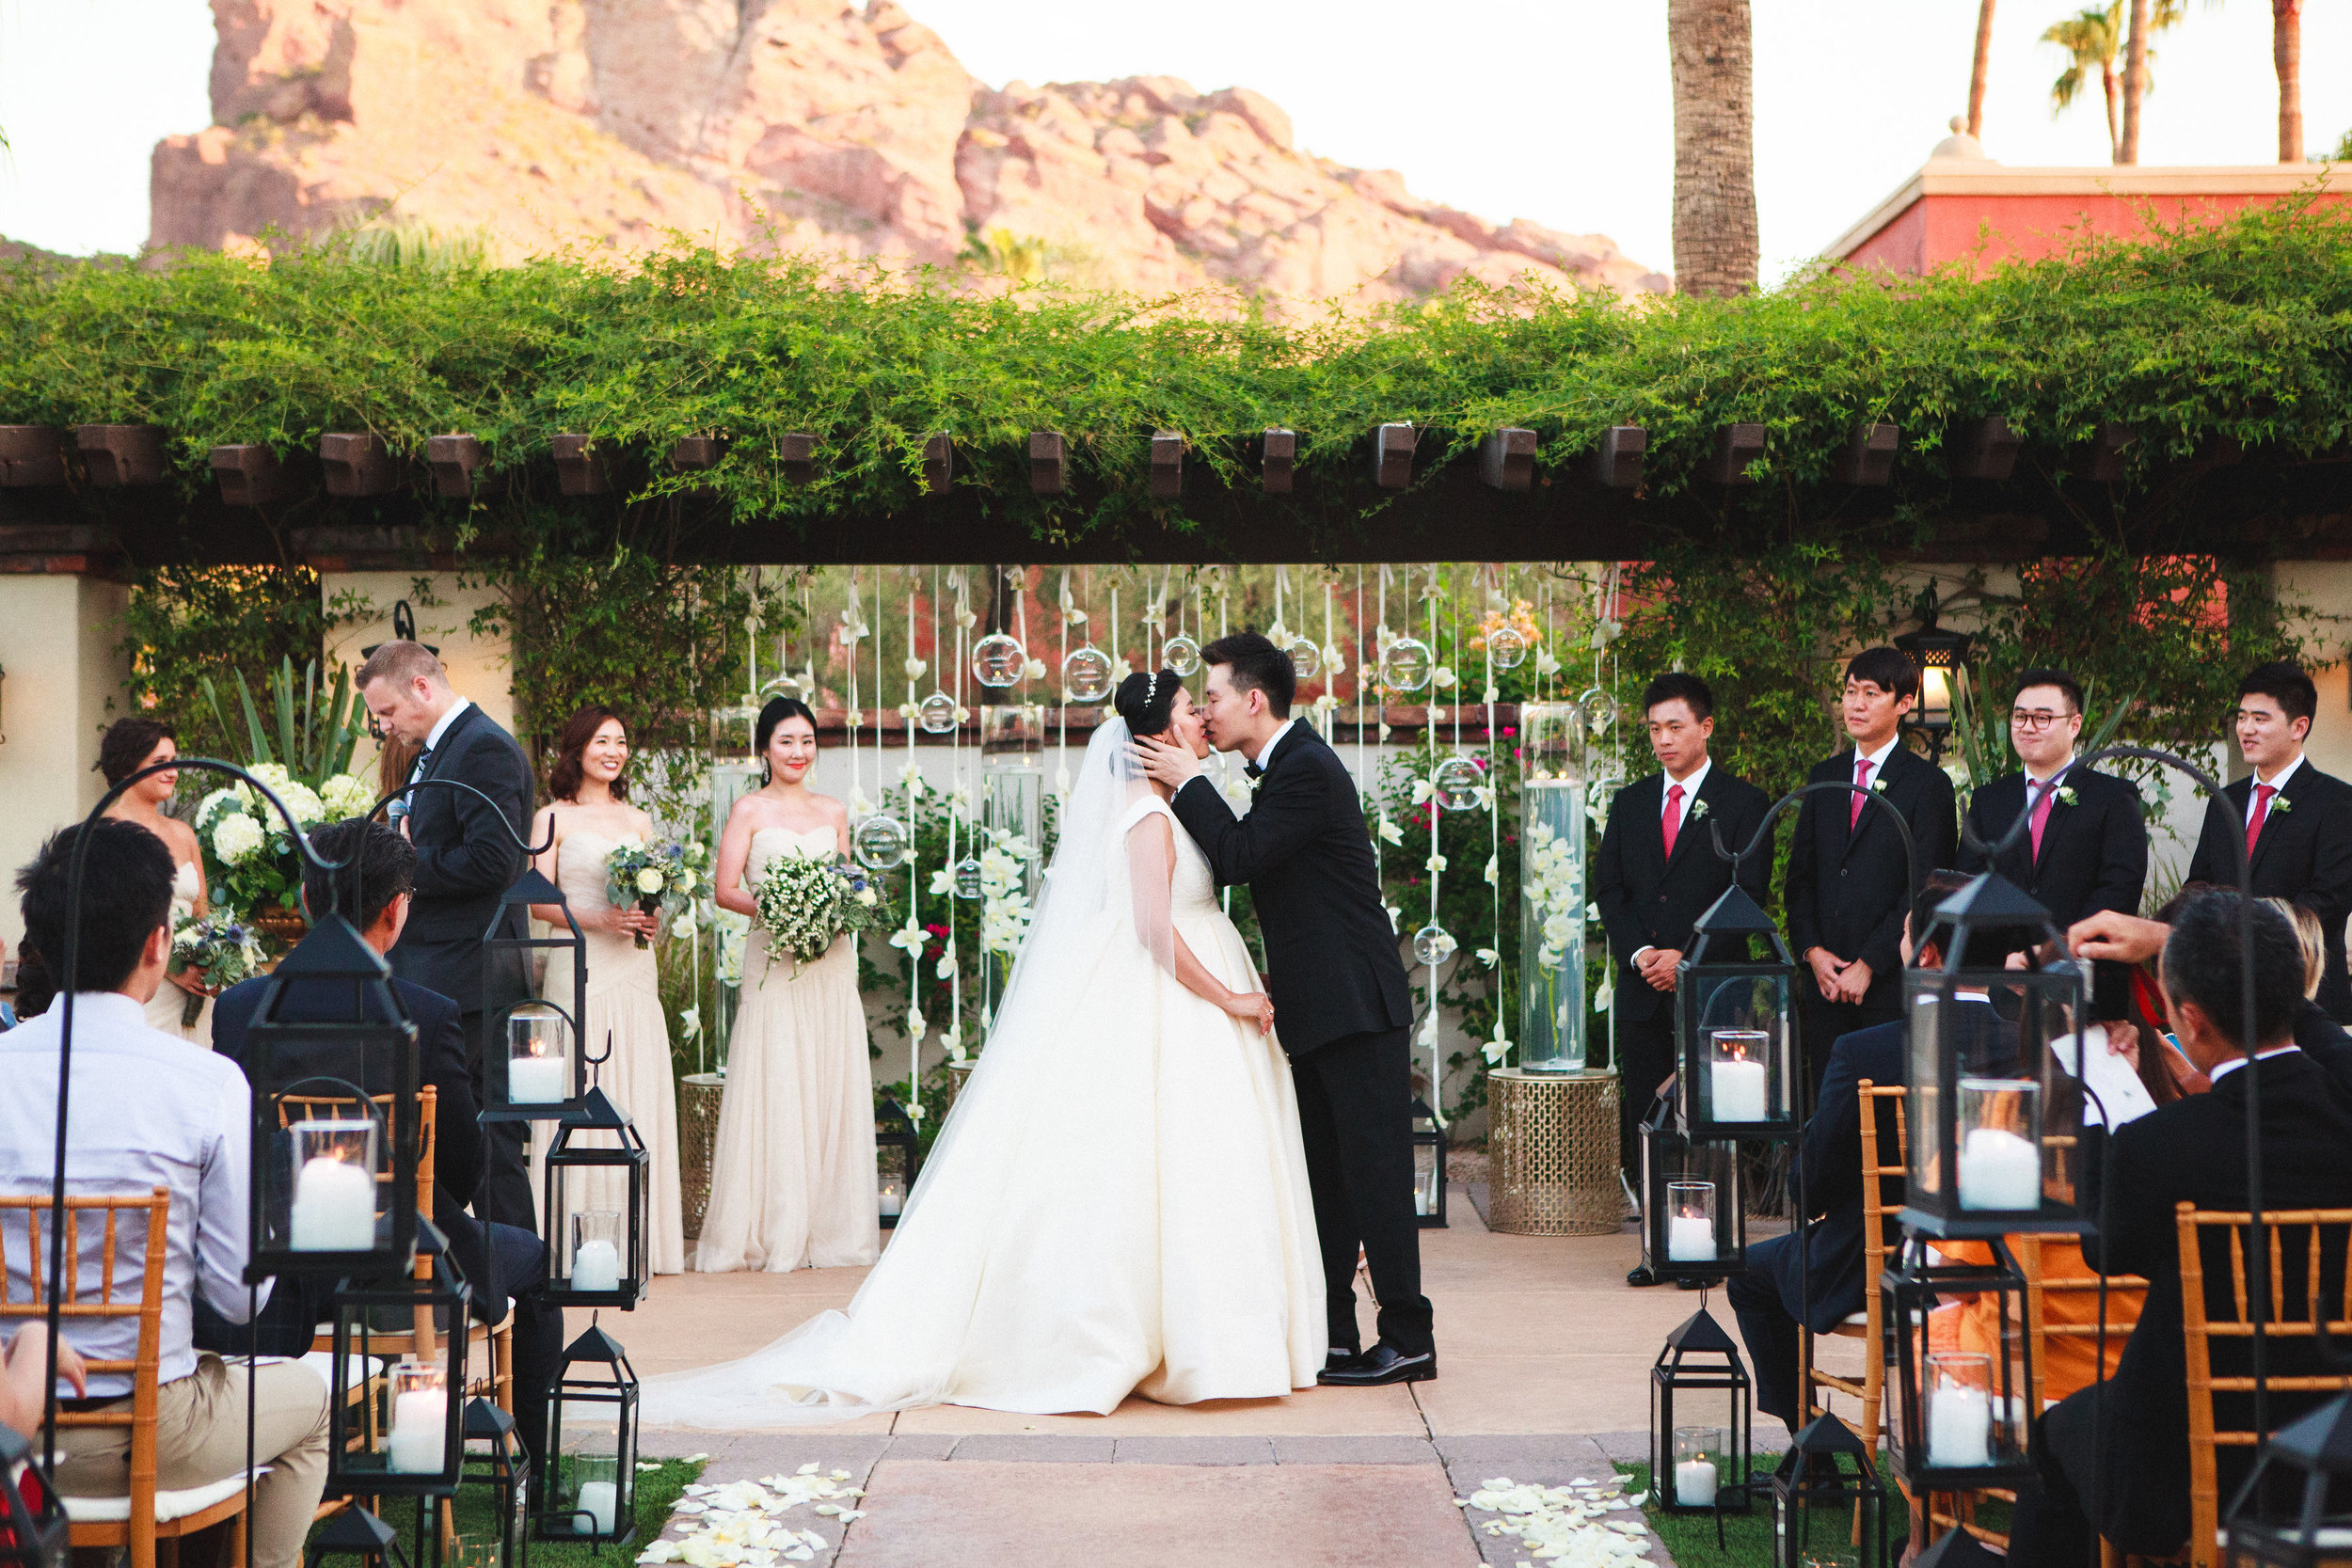 arizona wedding planner scottsdale wedding coordinator destination wedding desert wedding invitation garden ceremony